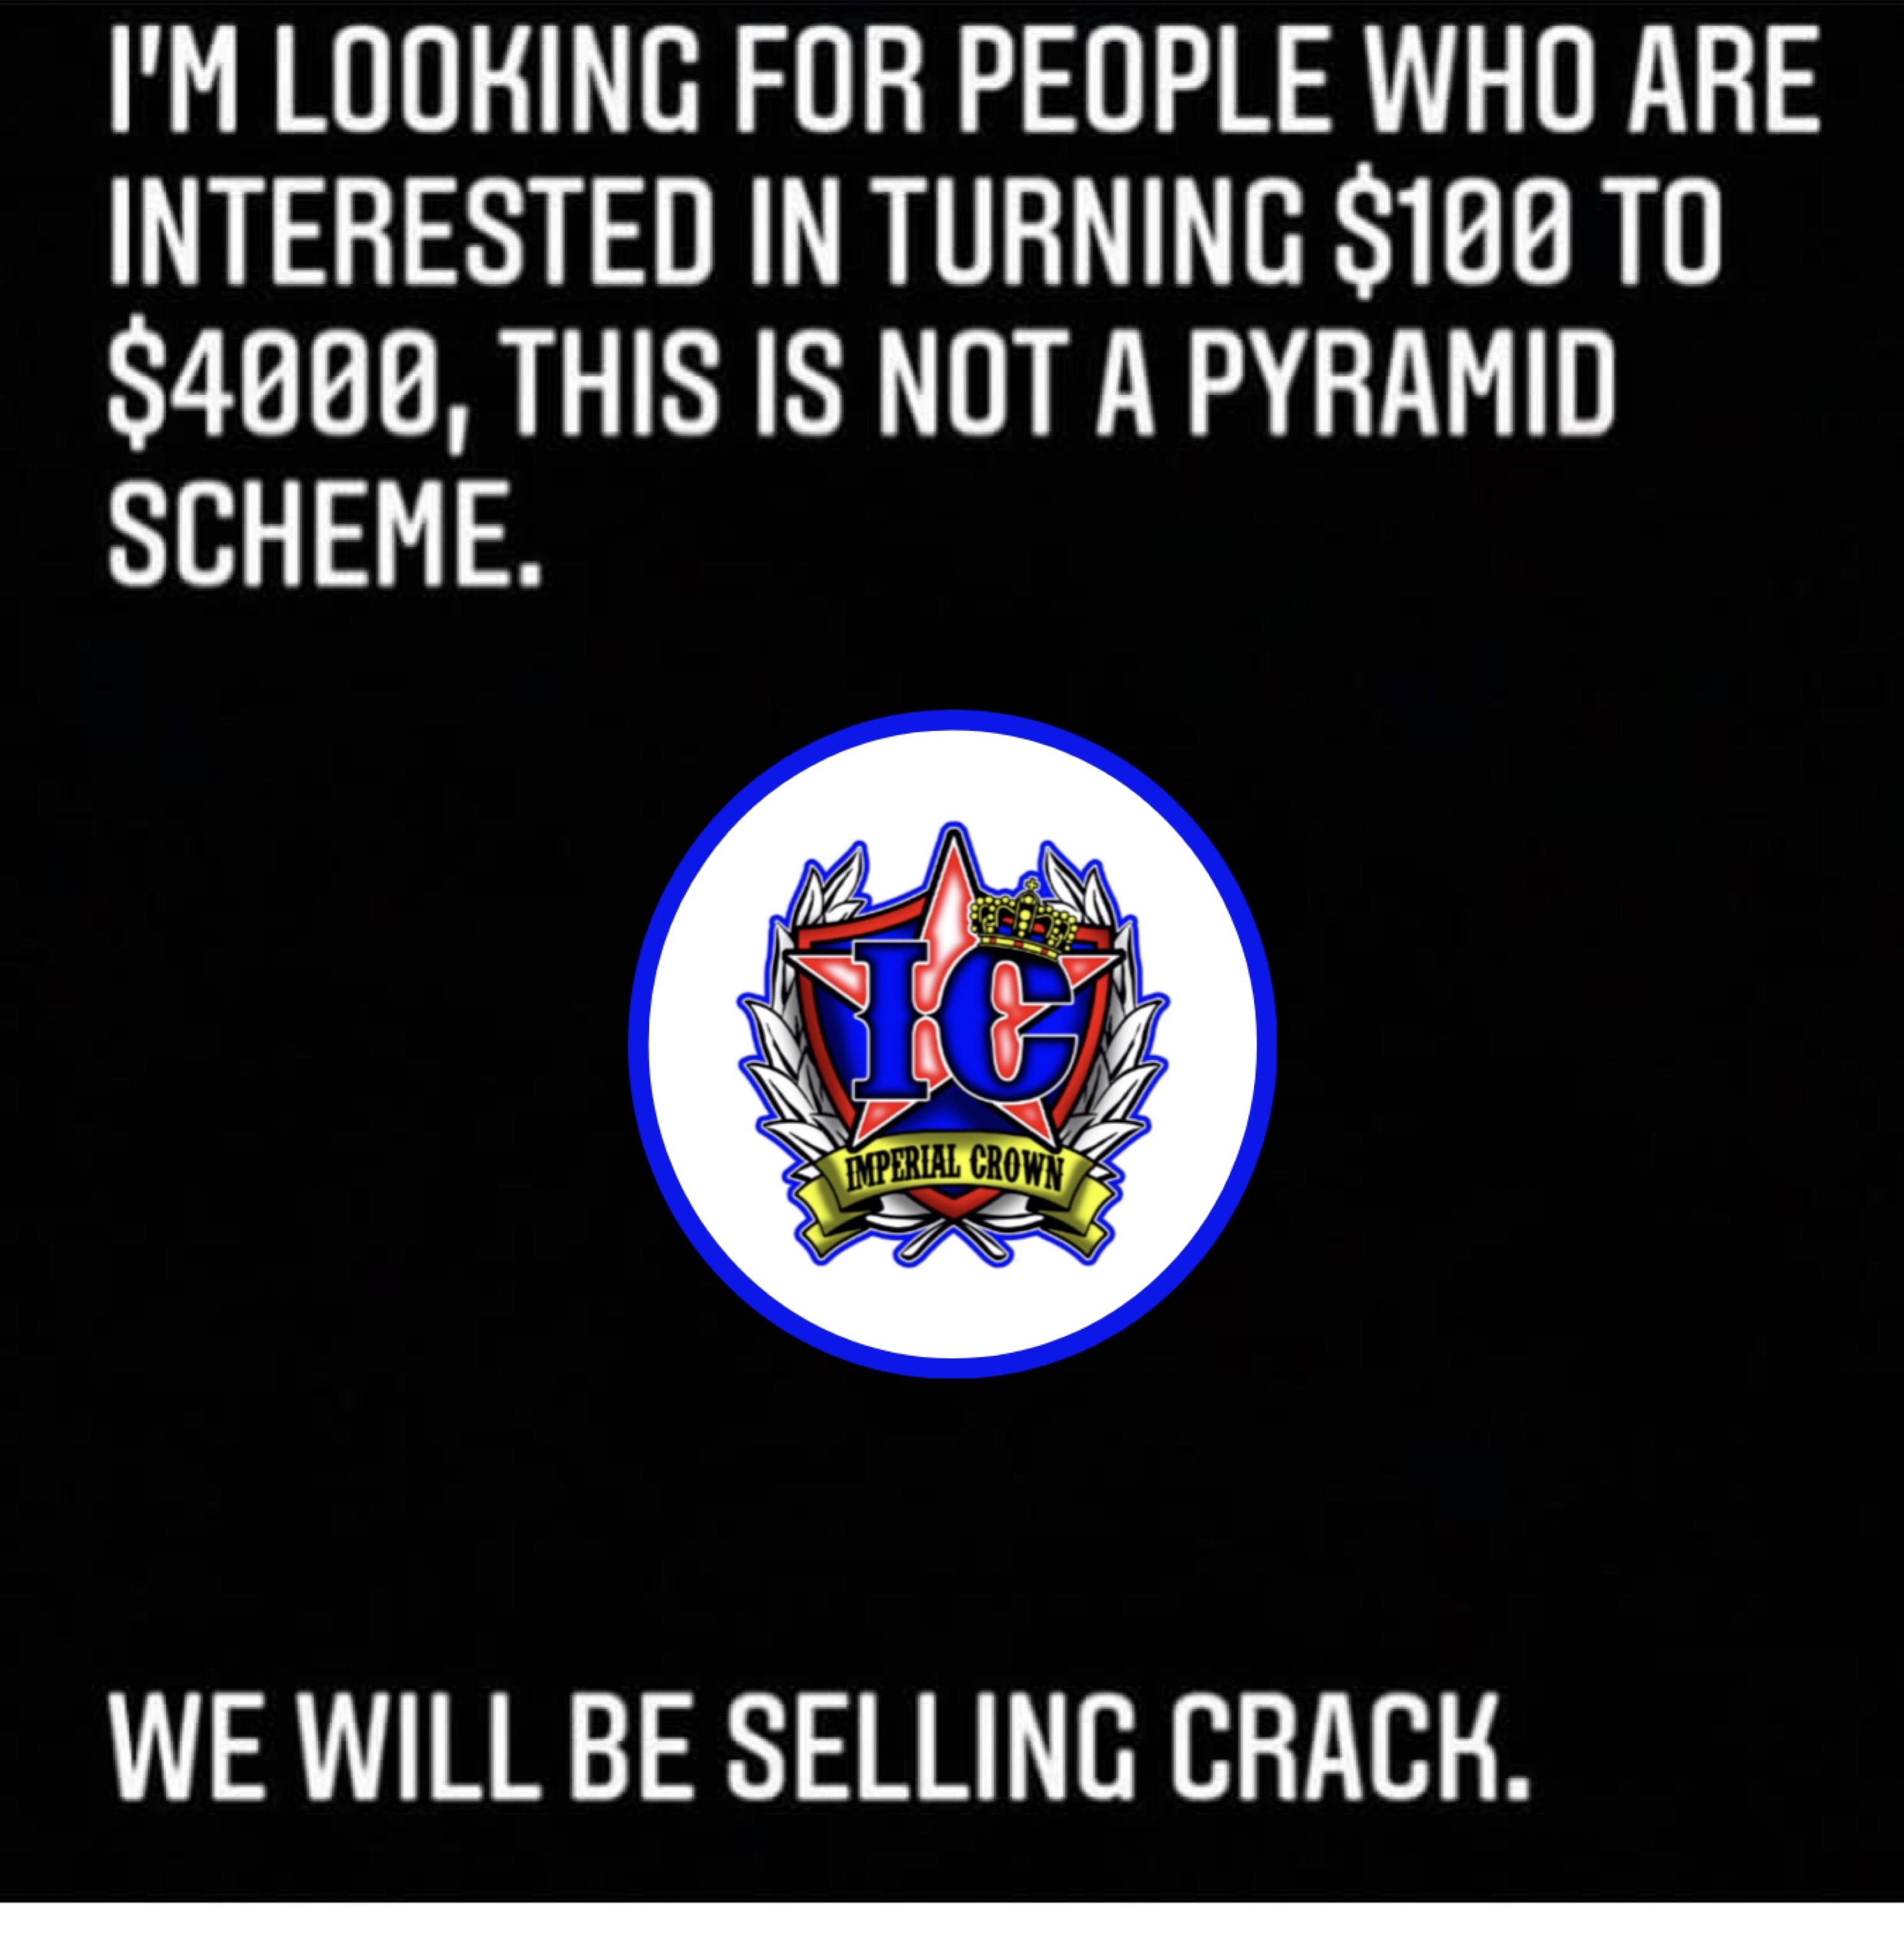 I'm looking for people who are interested in turning $100 to $4000 this is not a pyramid scheme